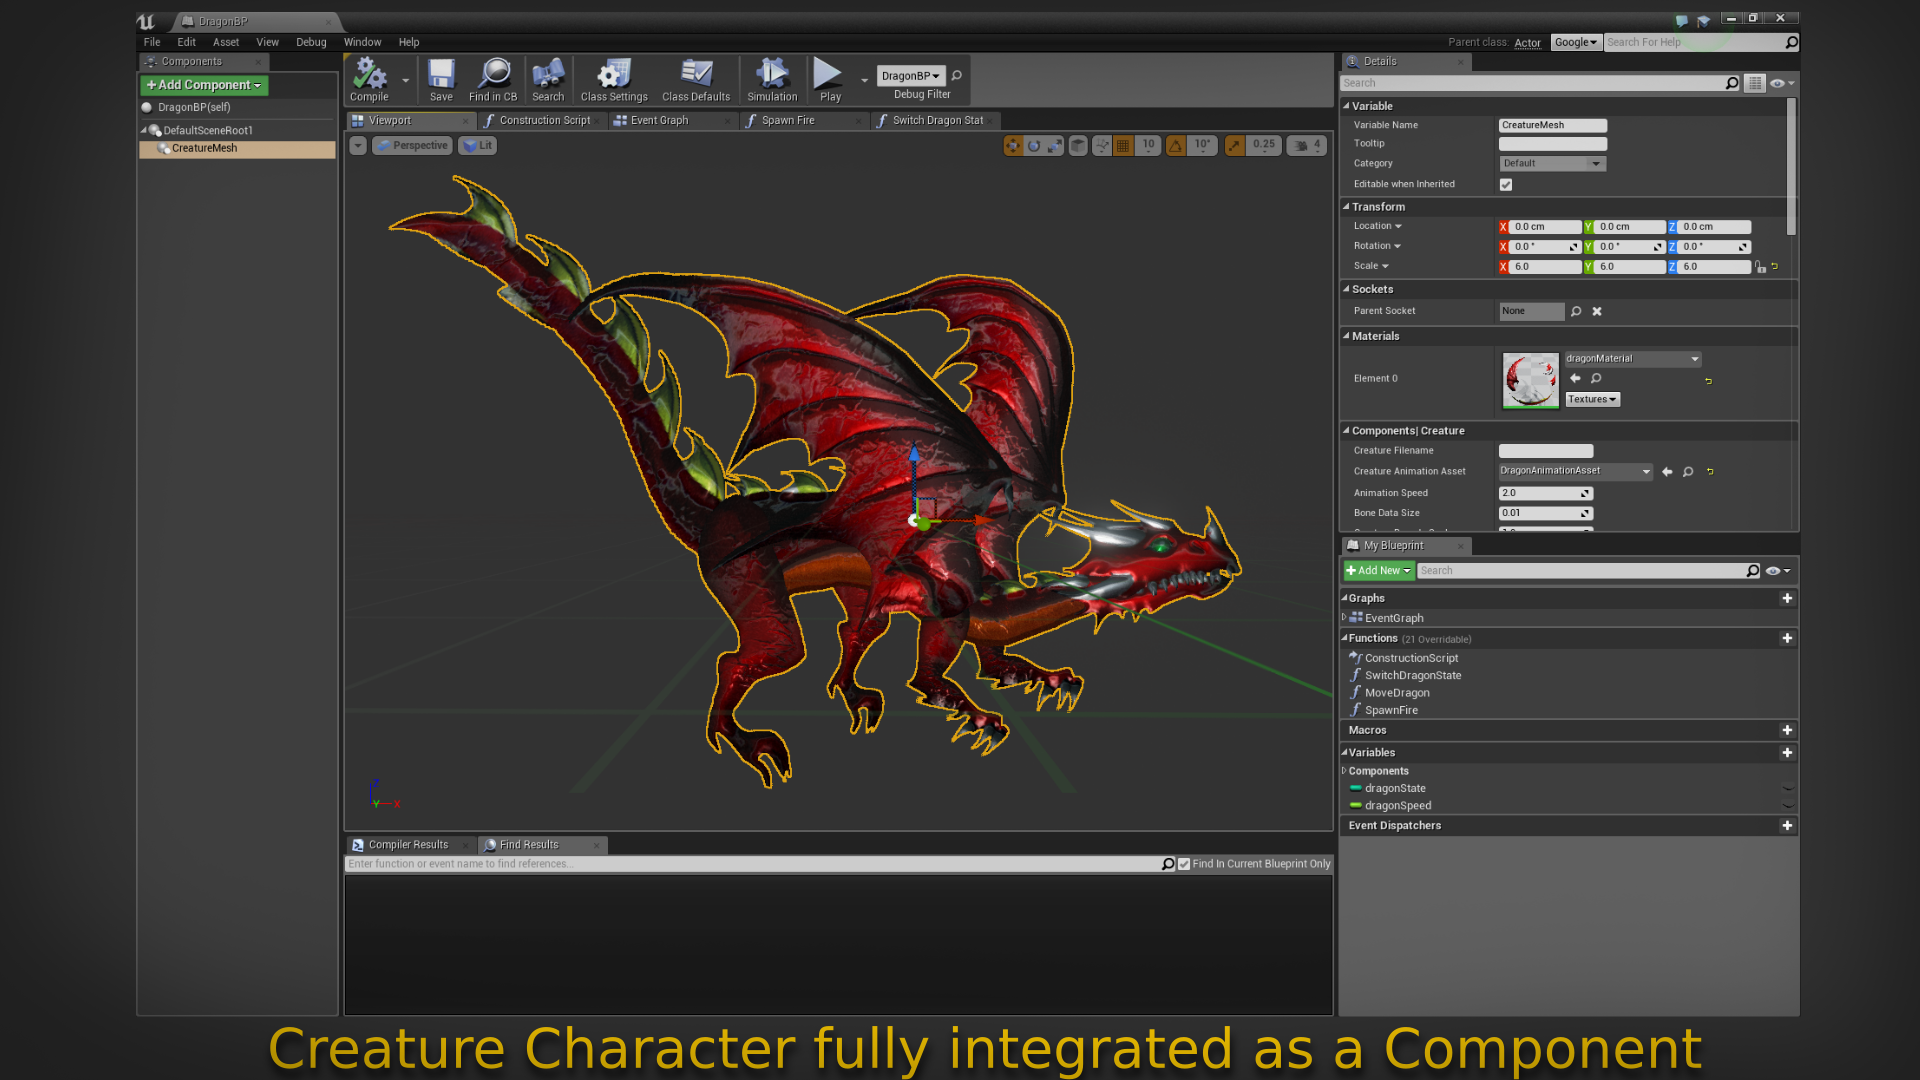 Creature 2D Skeletal and Mesh Animation by Jiayi Chong in